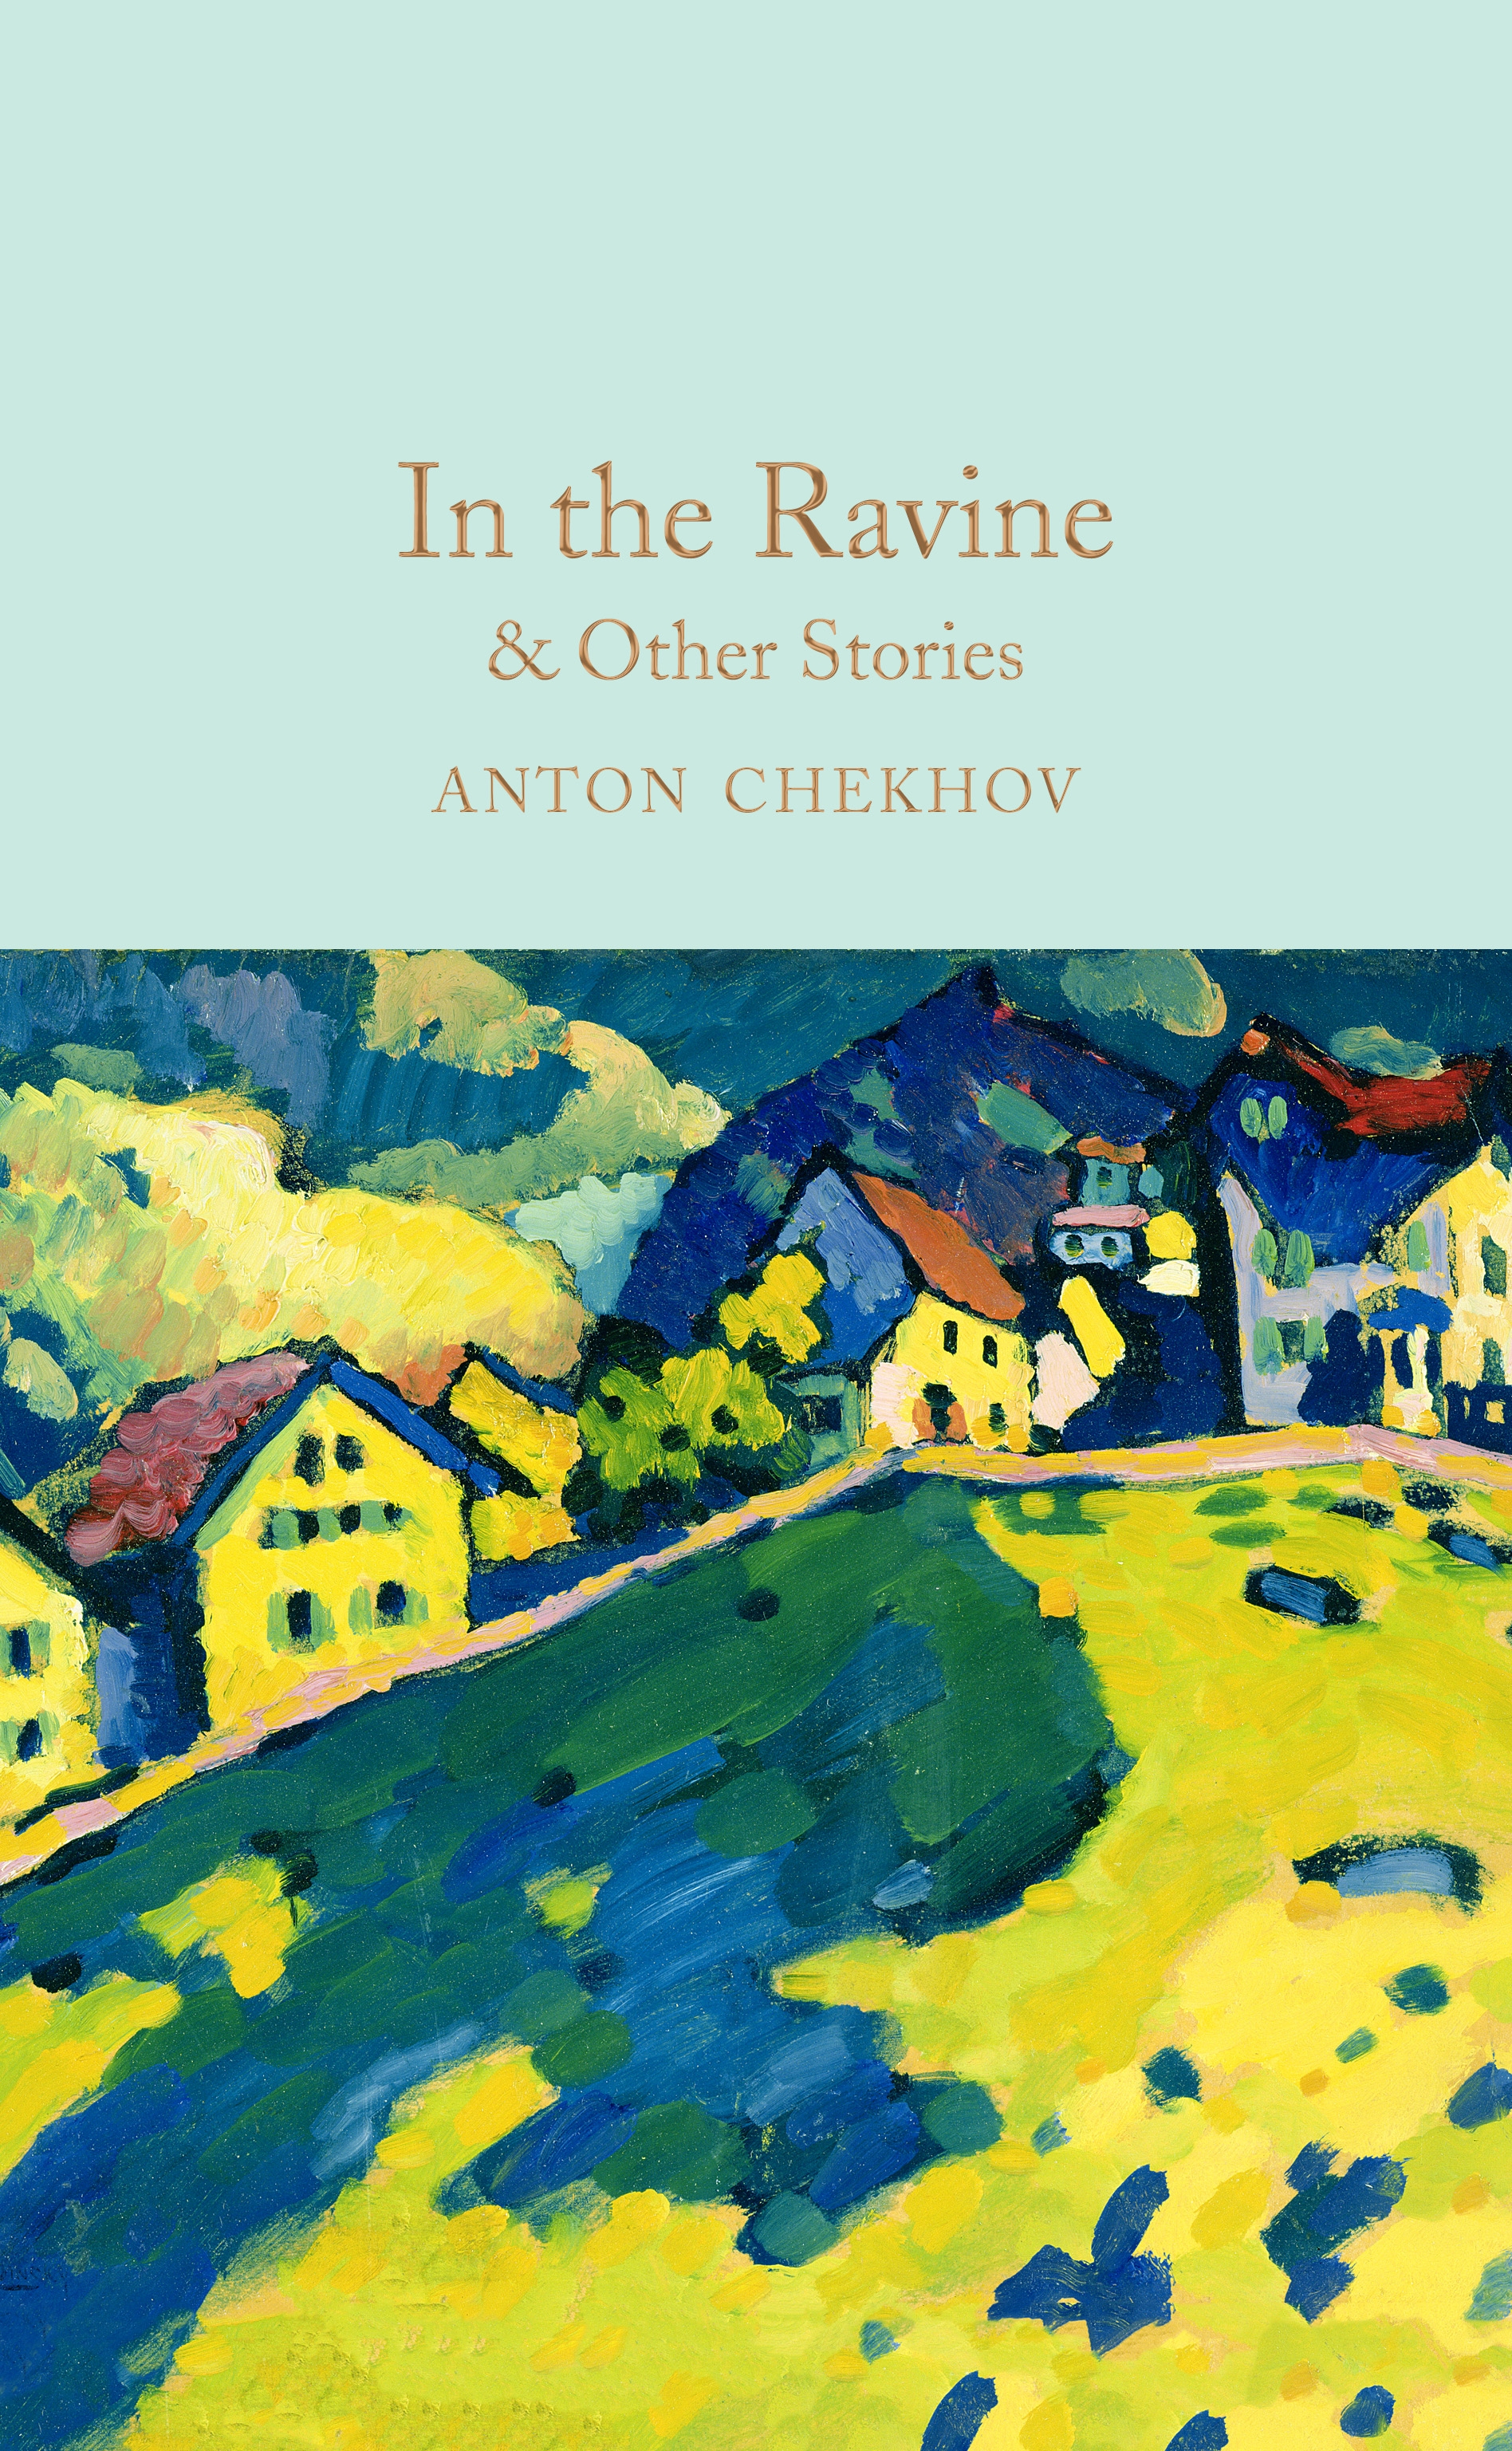 In the Ravine & Other Stories